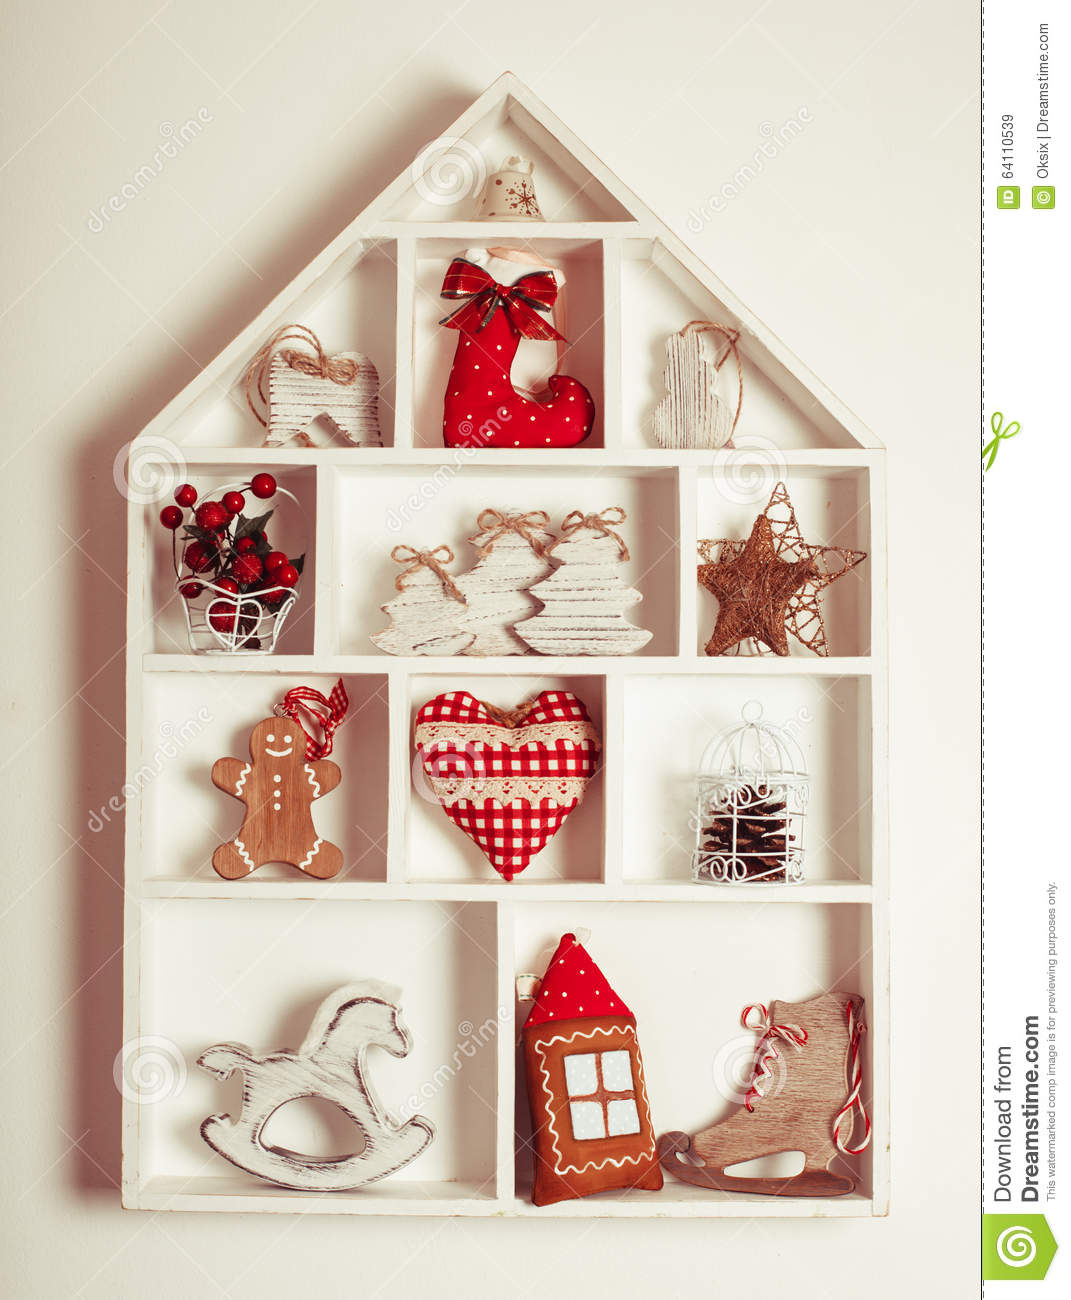 Christmas Decorations For The Wall Christmas Decorations On The Wall Stock Photo Image 64110539